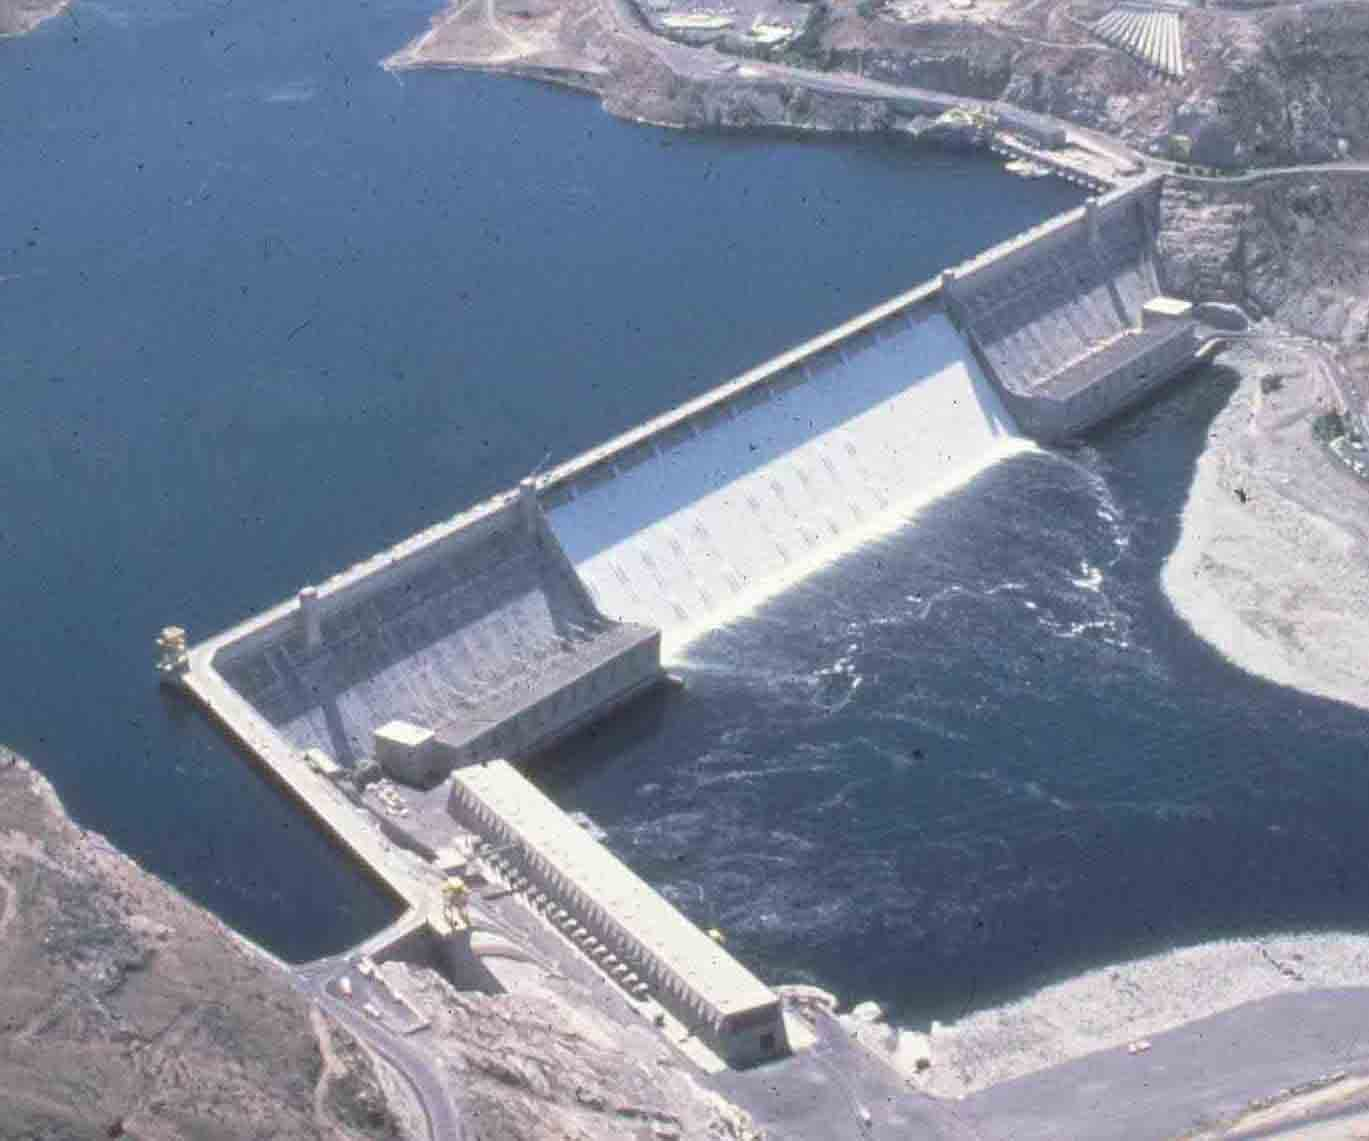 Grand Coulee Dam has 6800 MW of installed generating capacity in its four hydropower plants.